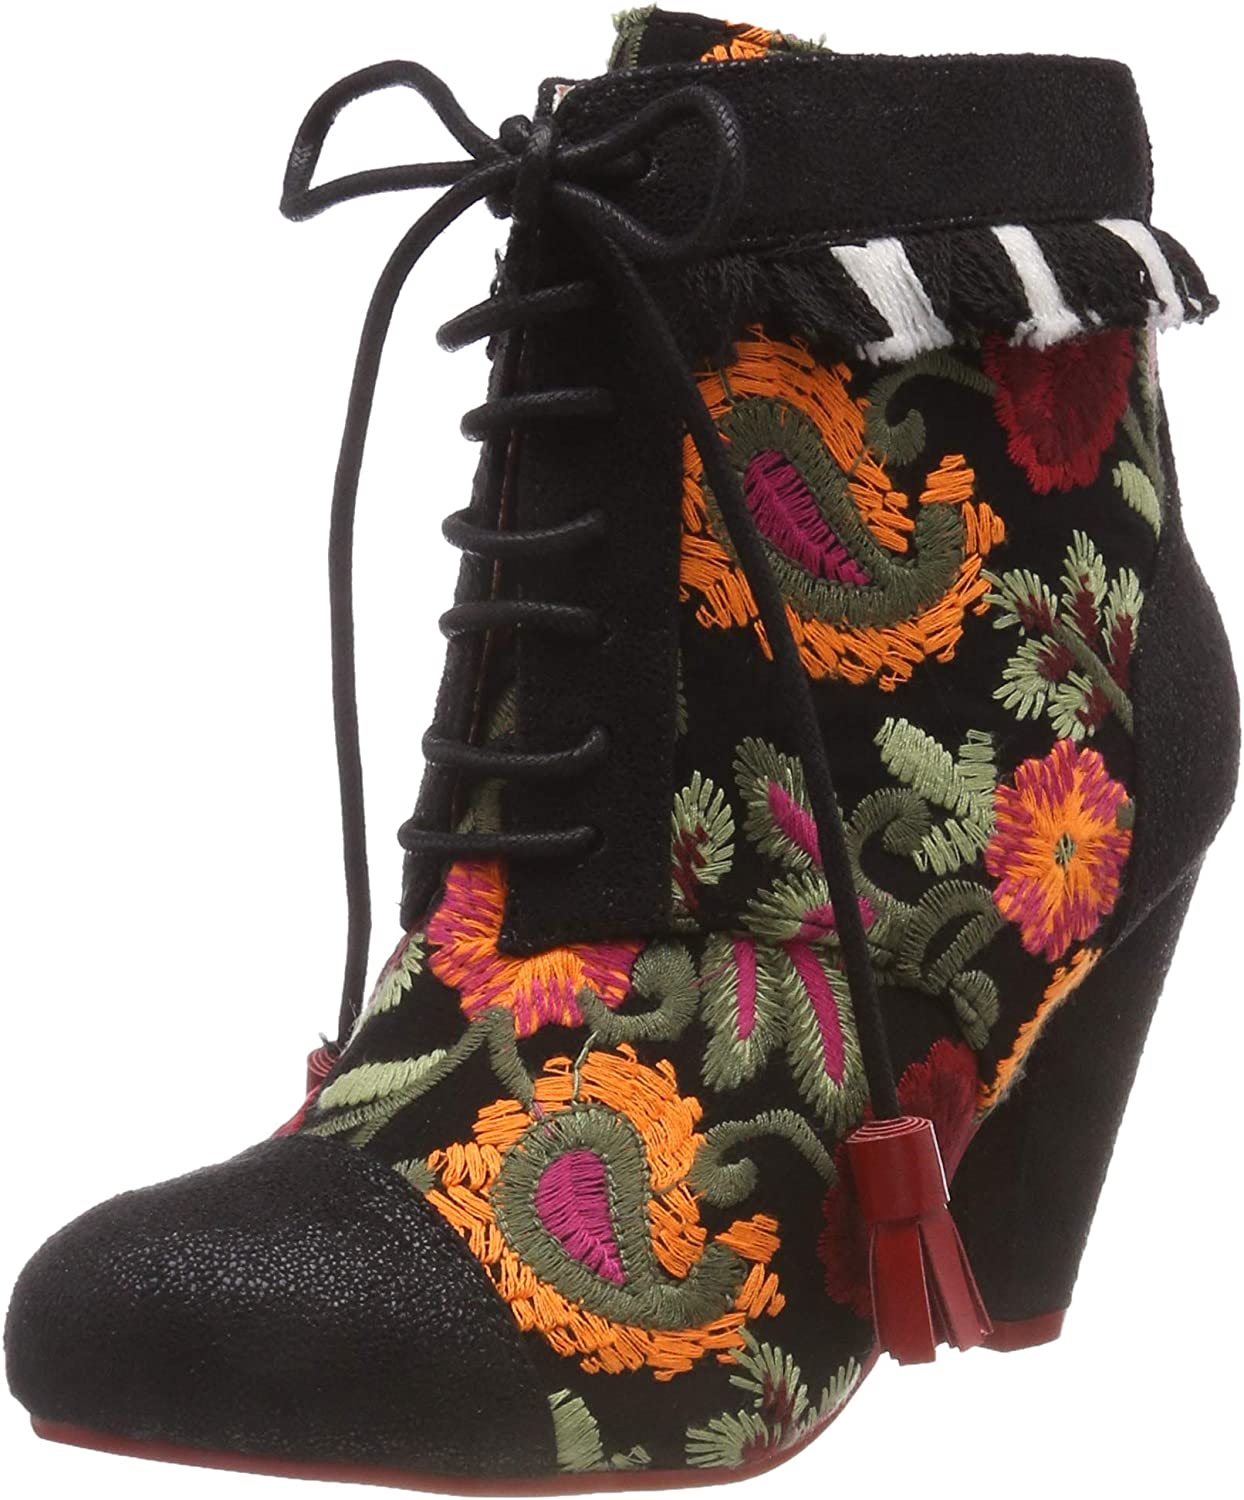 Poetic Licence by Irregular Choice Damen Winters Tale Stiefeletten Stiefeletten Stiefeletten  61a059